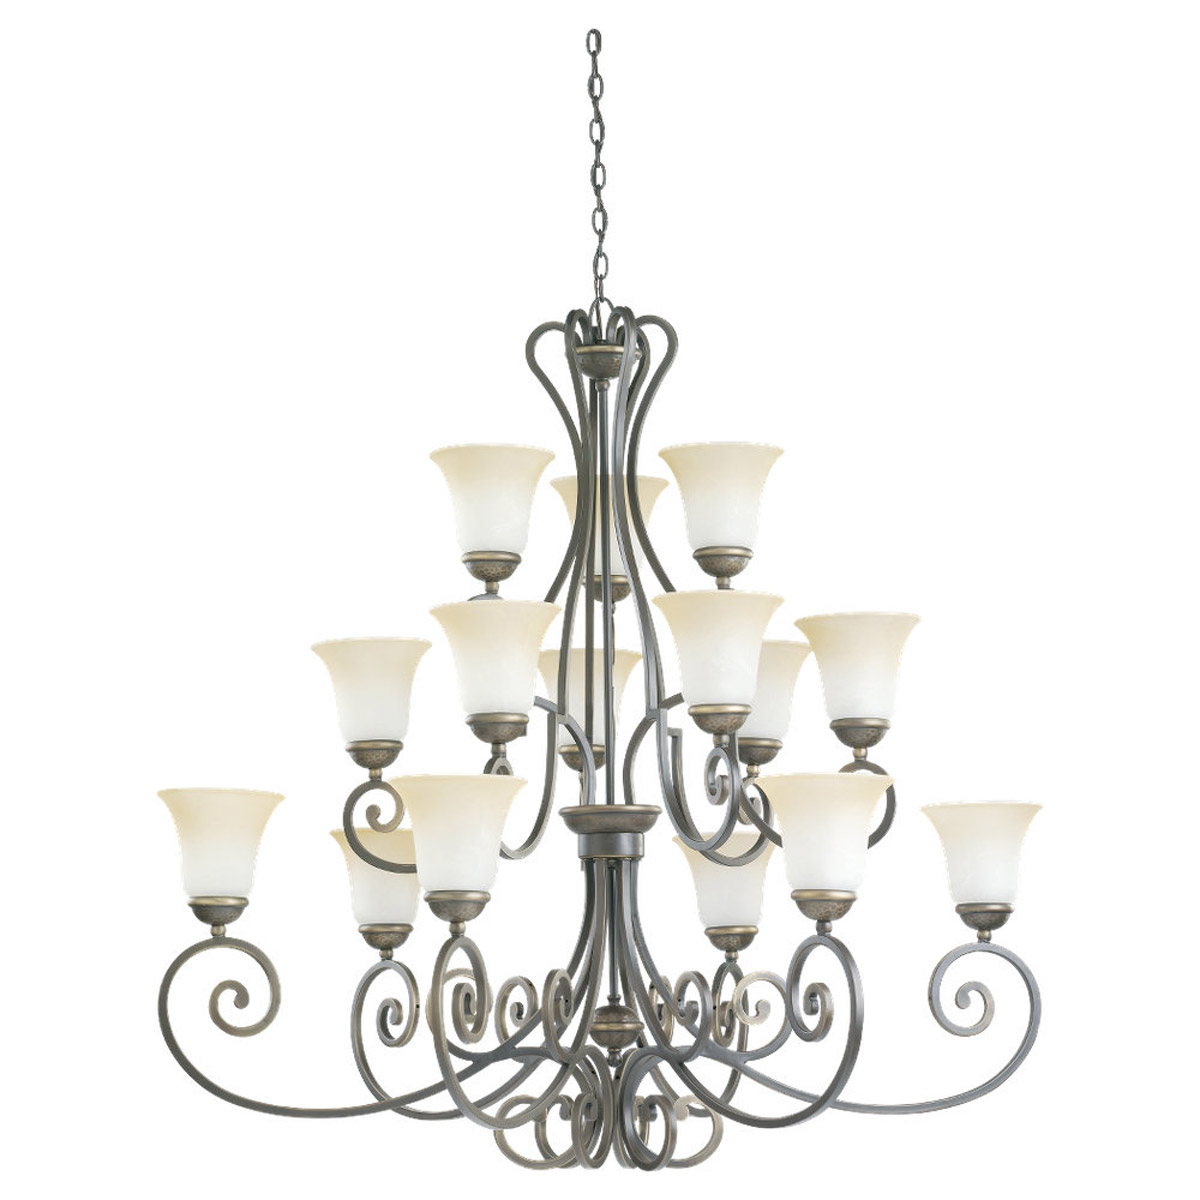 Sea Gull Lighting Brandywine 15 Light Chandelier in Antique Bronze 31433-71 photo